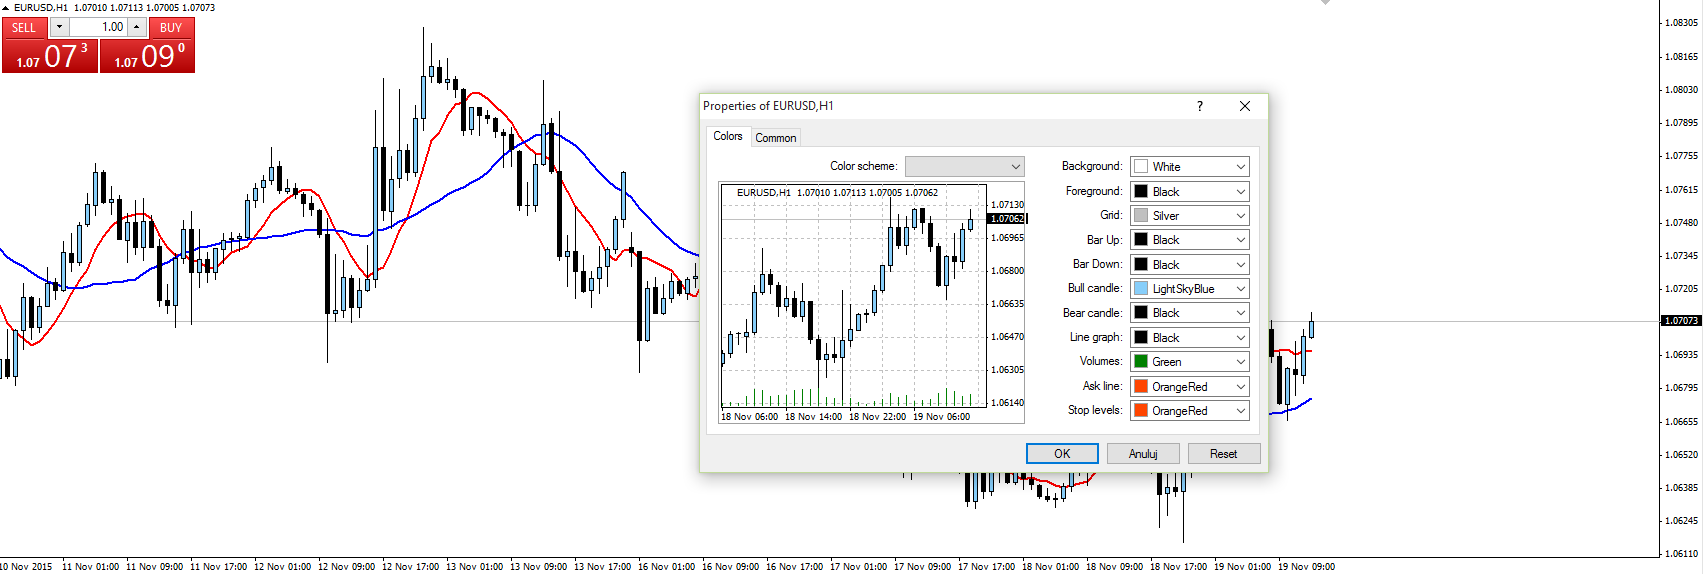 MetaTrader 4 - Tutorial 9